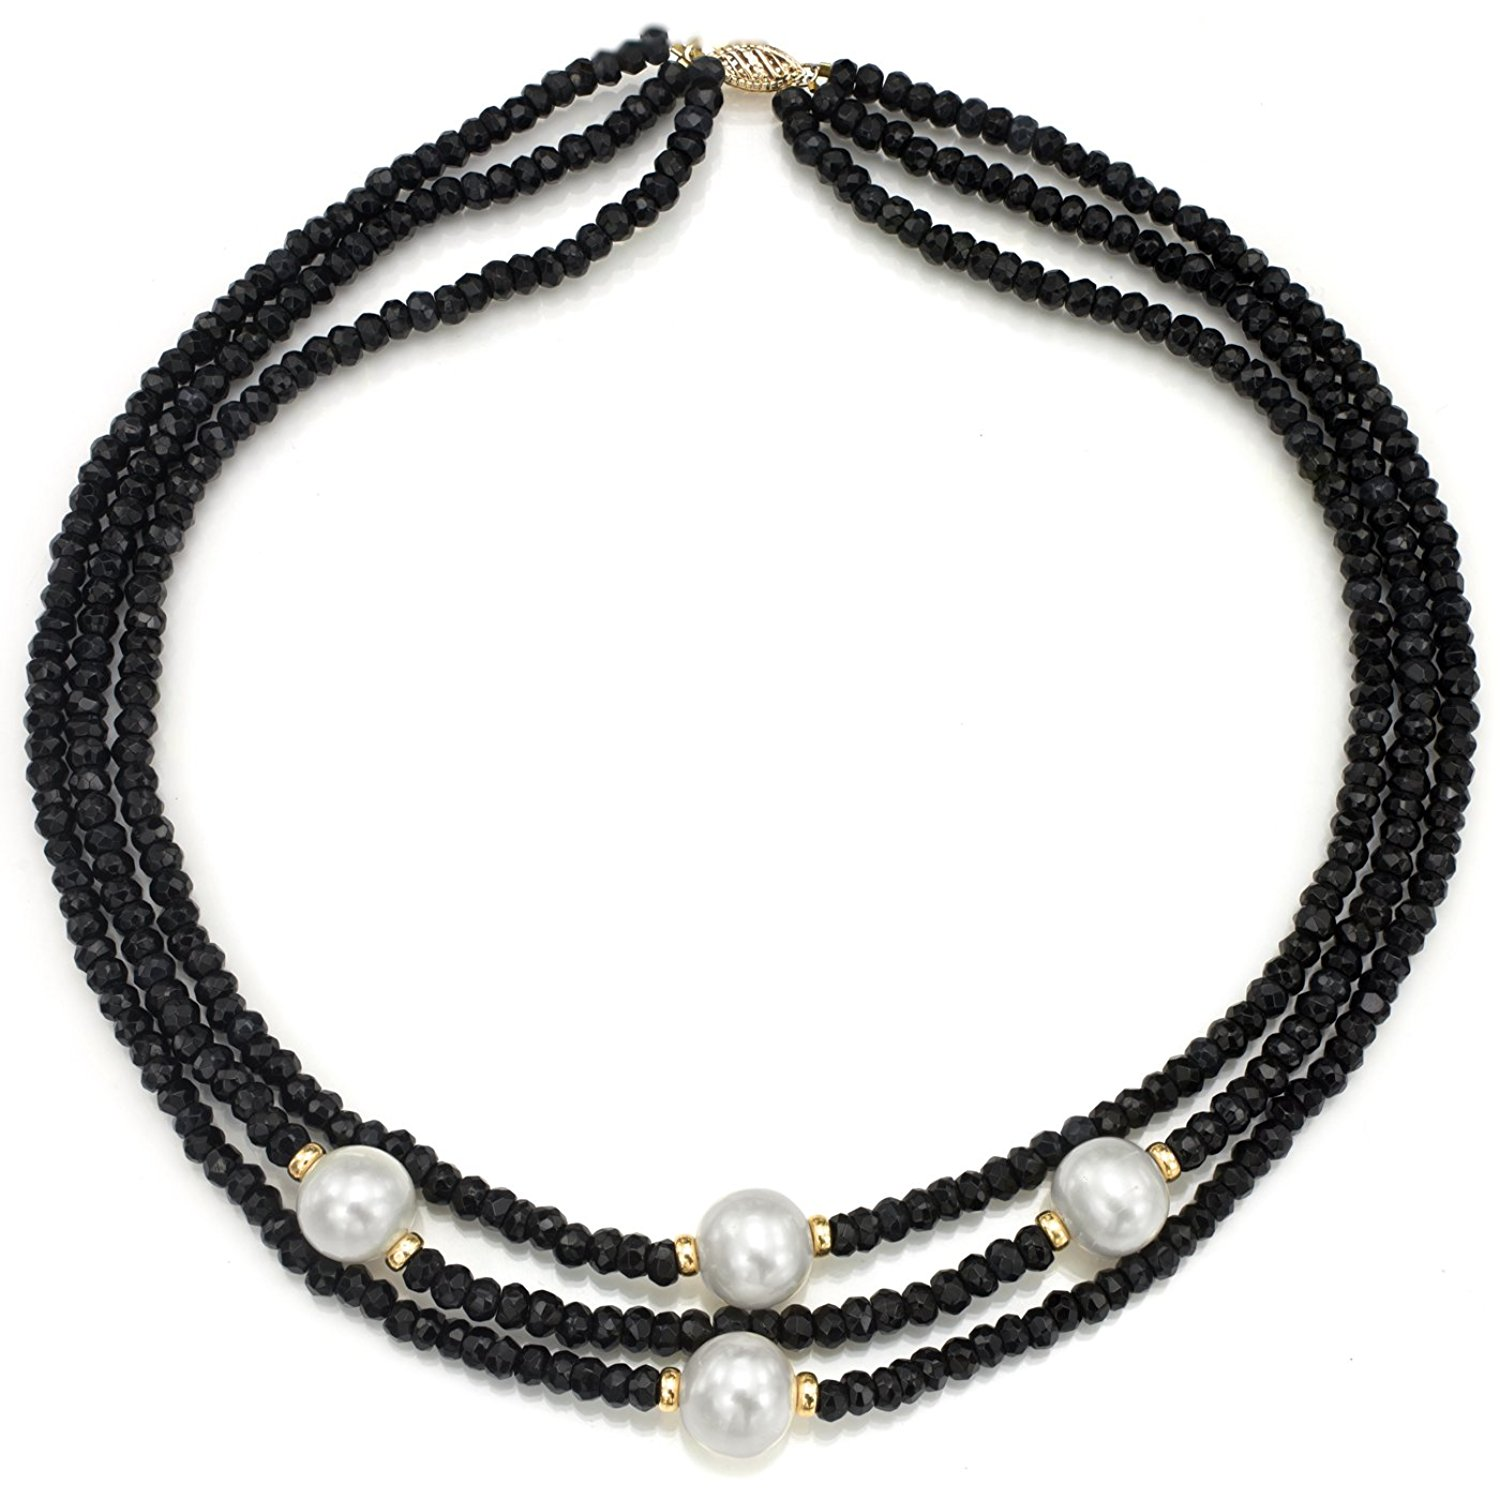 """La Regis Jewelry 14k Yellow Gold 12-12.5mm White Freshwater Cultured Pearl 3-4mm Simulated Black Onyx 3-Rows Necklace, 16"""""""